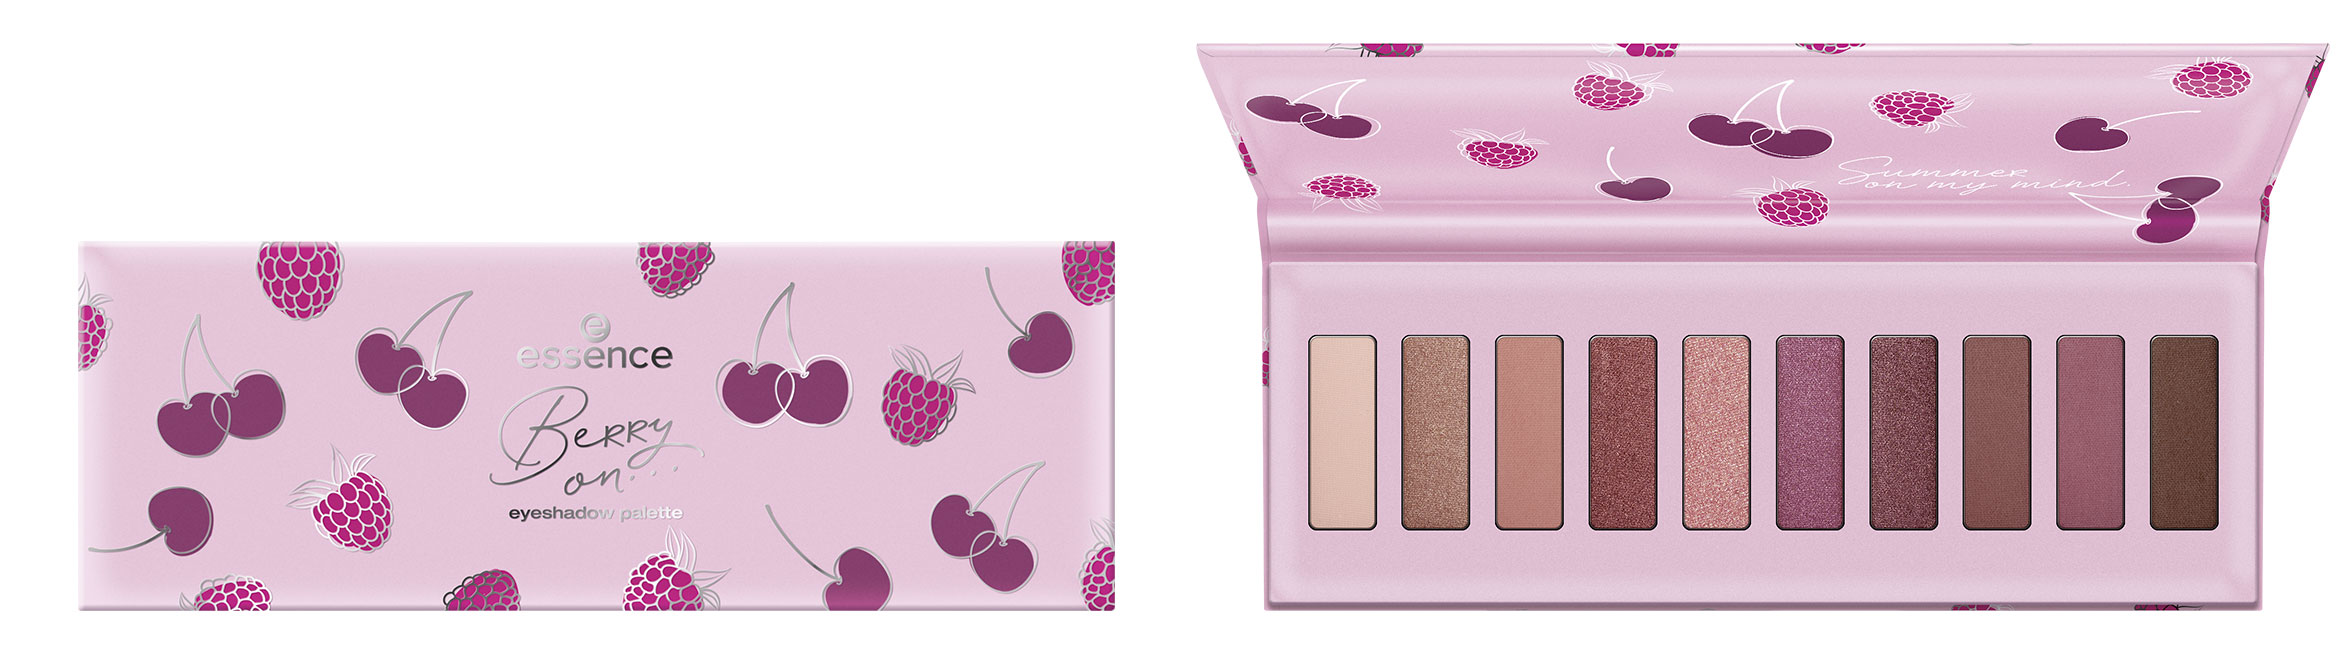 essence-berry-on-eyeshadow-palette